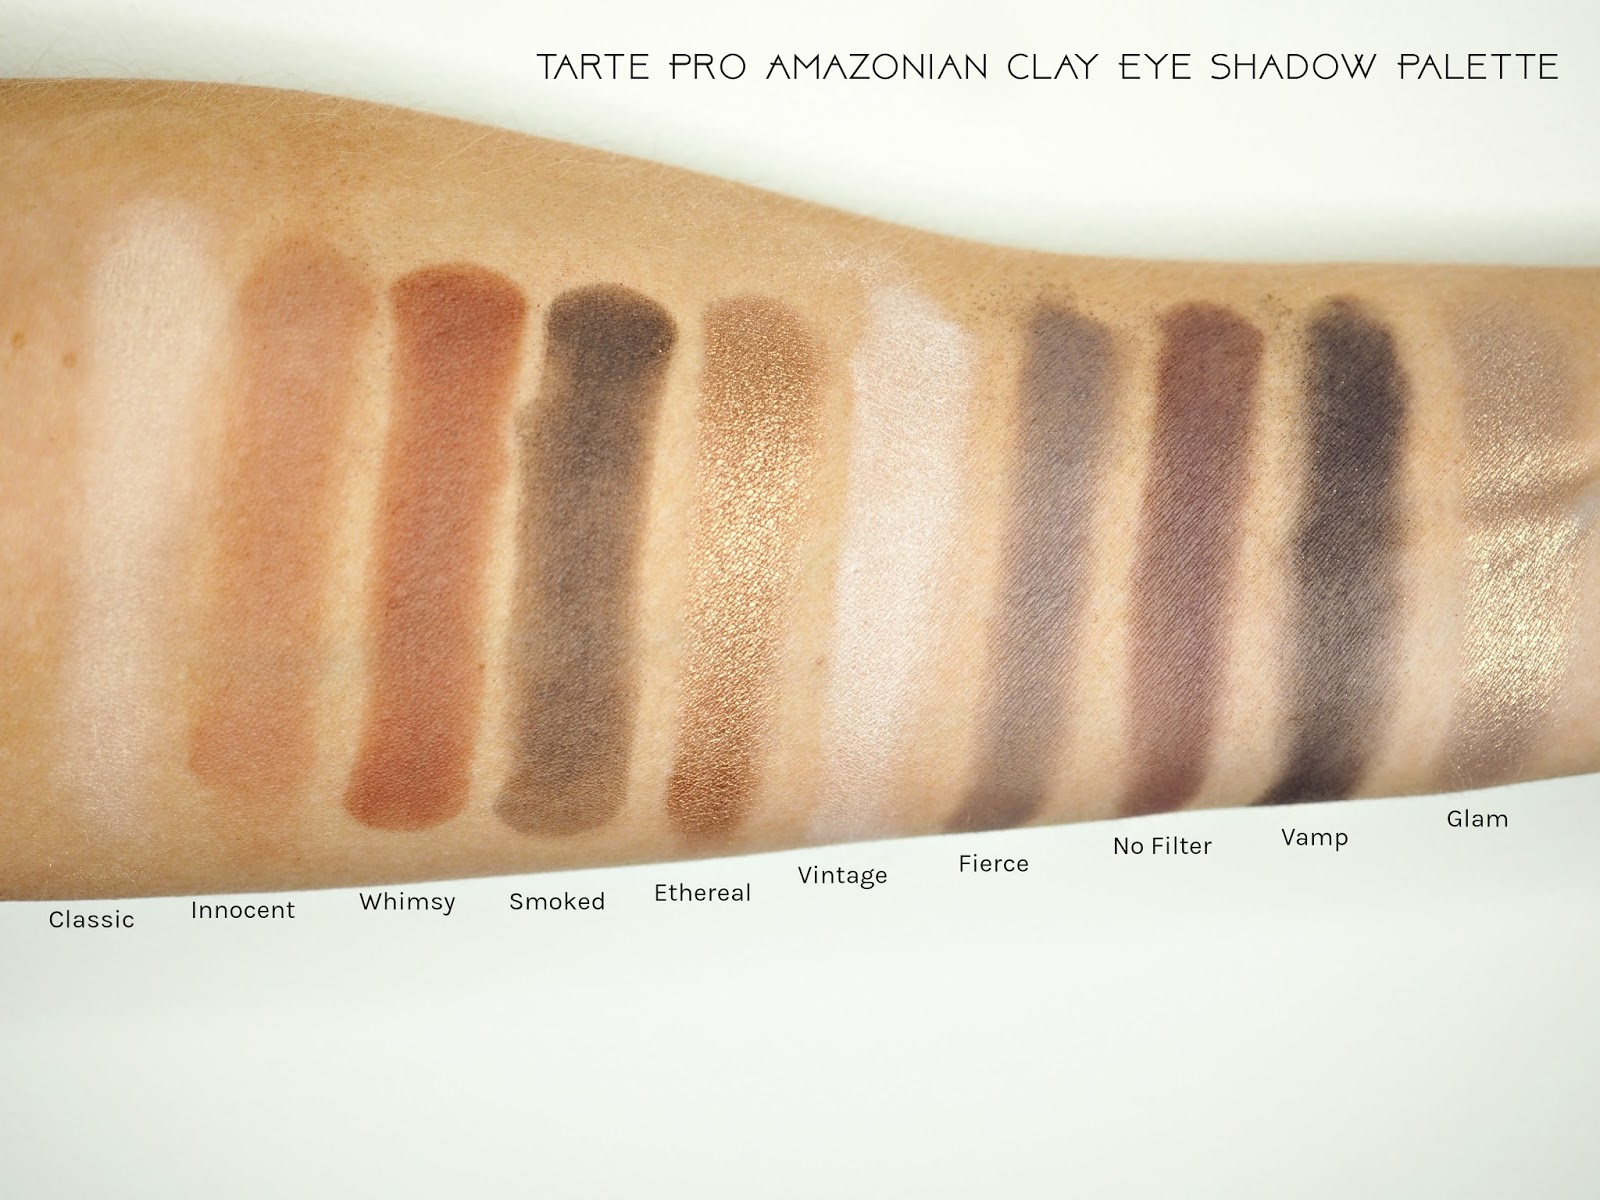 Tarte Pro Amazonian Clay Eyeshadow Palette Swatches